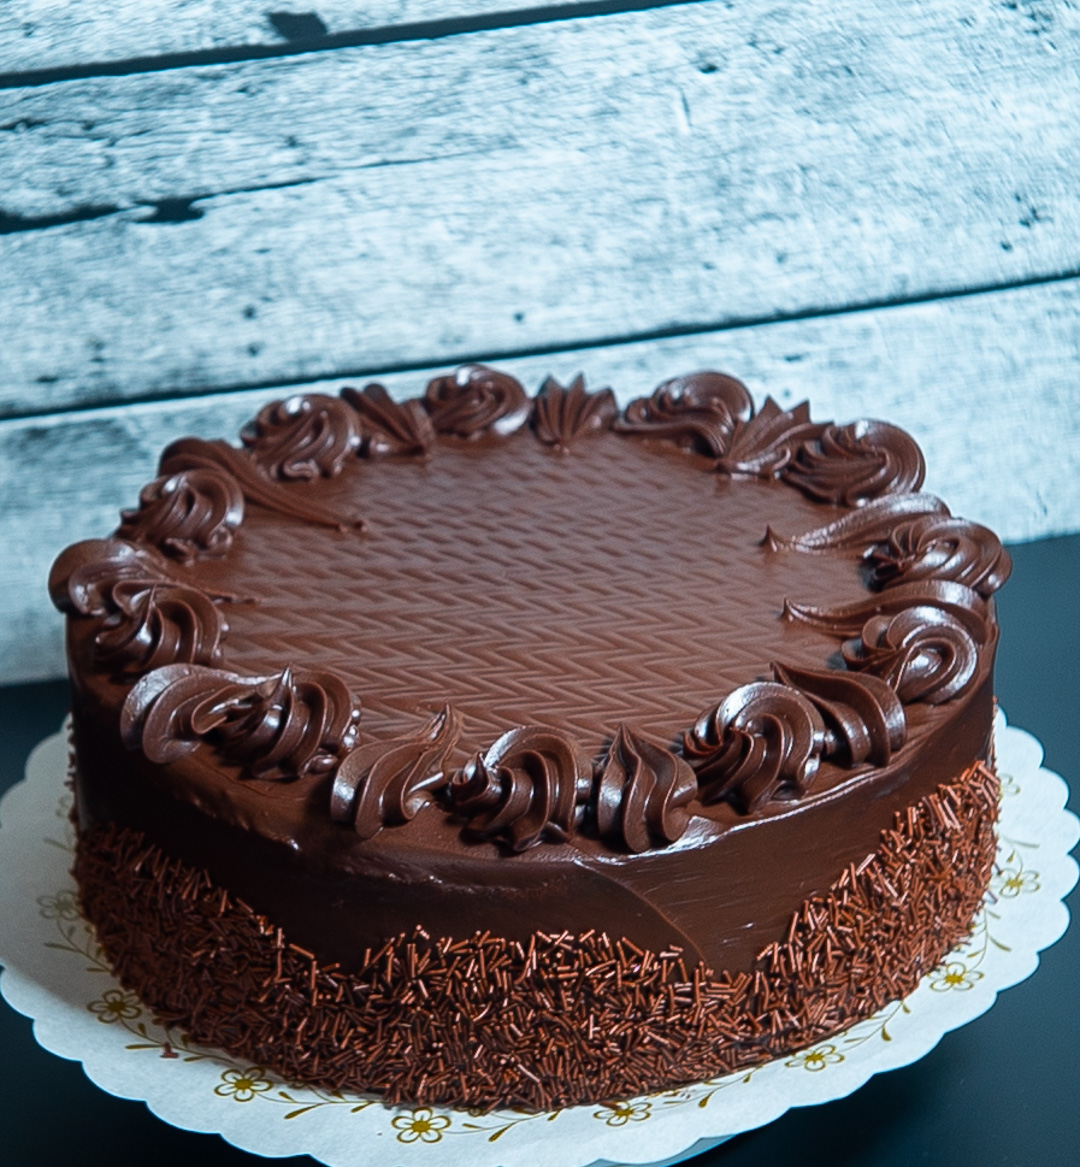 Chocolate cake with Ganache.